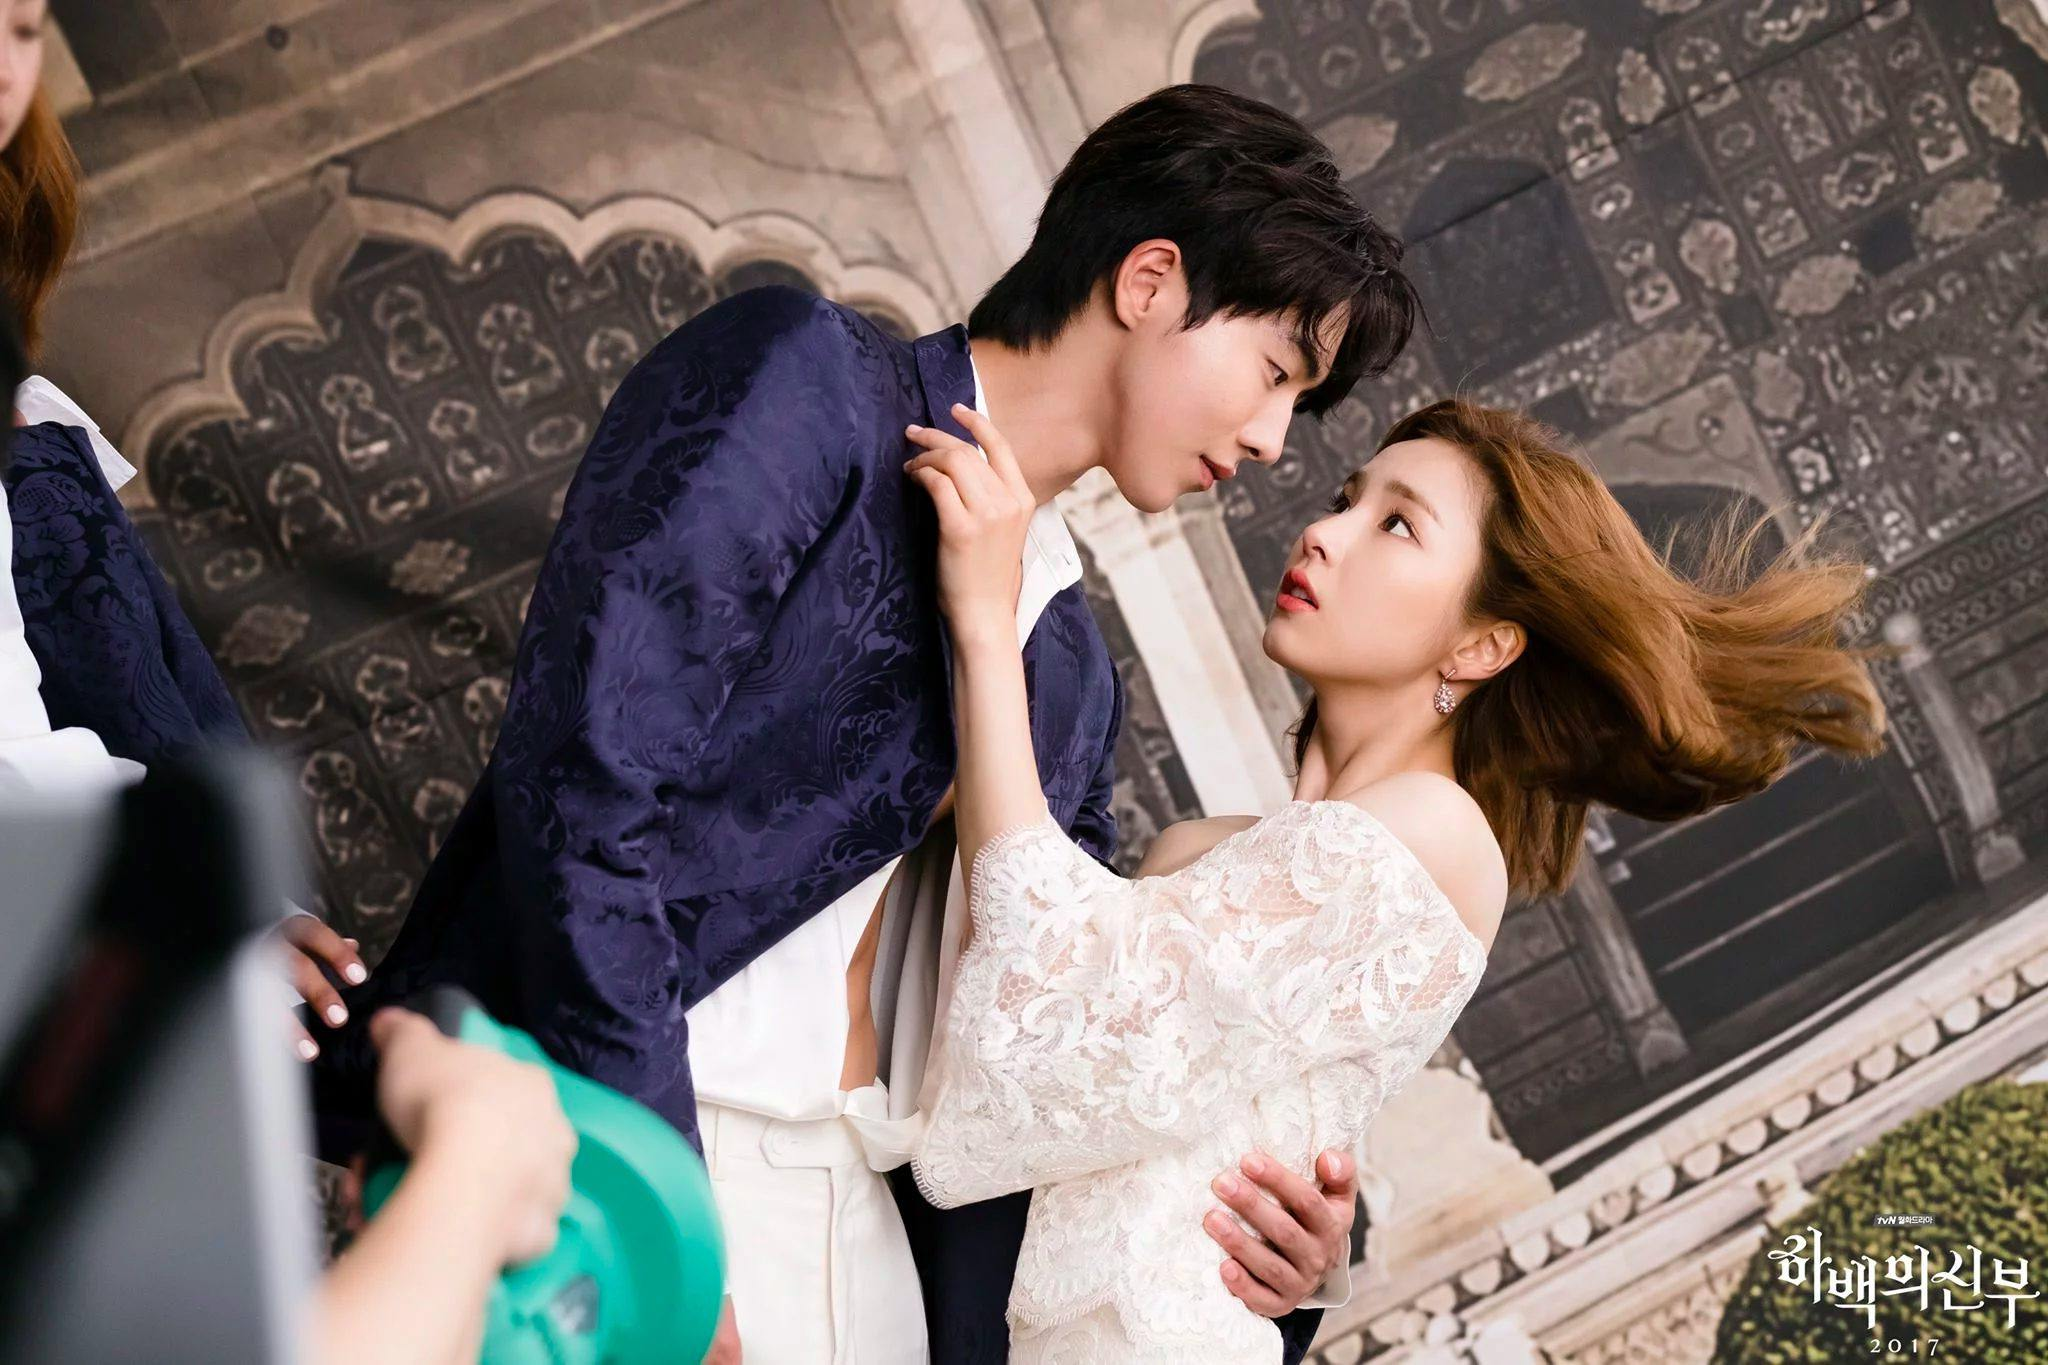 The Bride Of Habaek Receives The Lowest Viewership Rating Of All Time Koreaboo